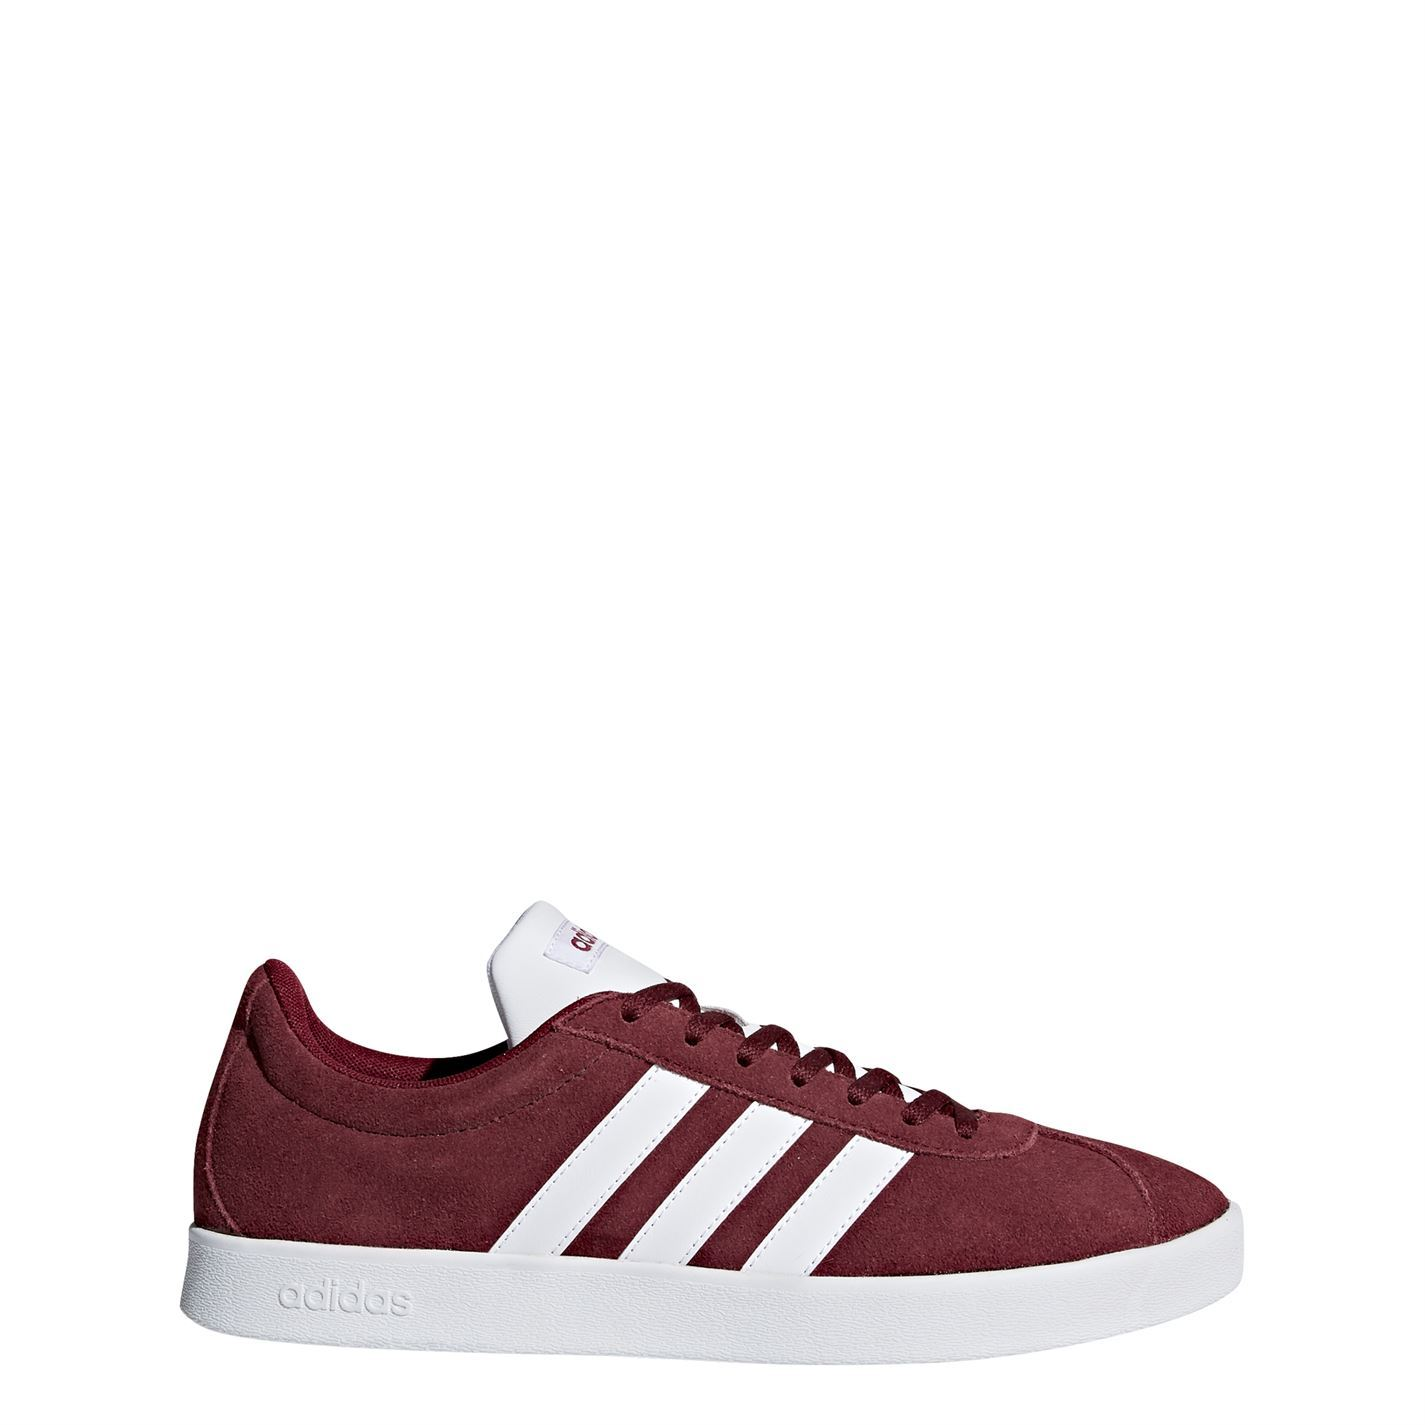 adidas hommes VI Court 2 Trainers Lace Up Cushioned Ankle Collar Ortholite